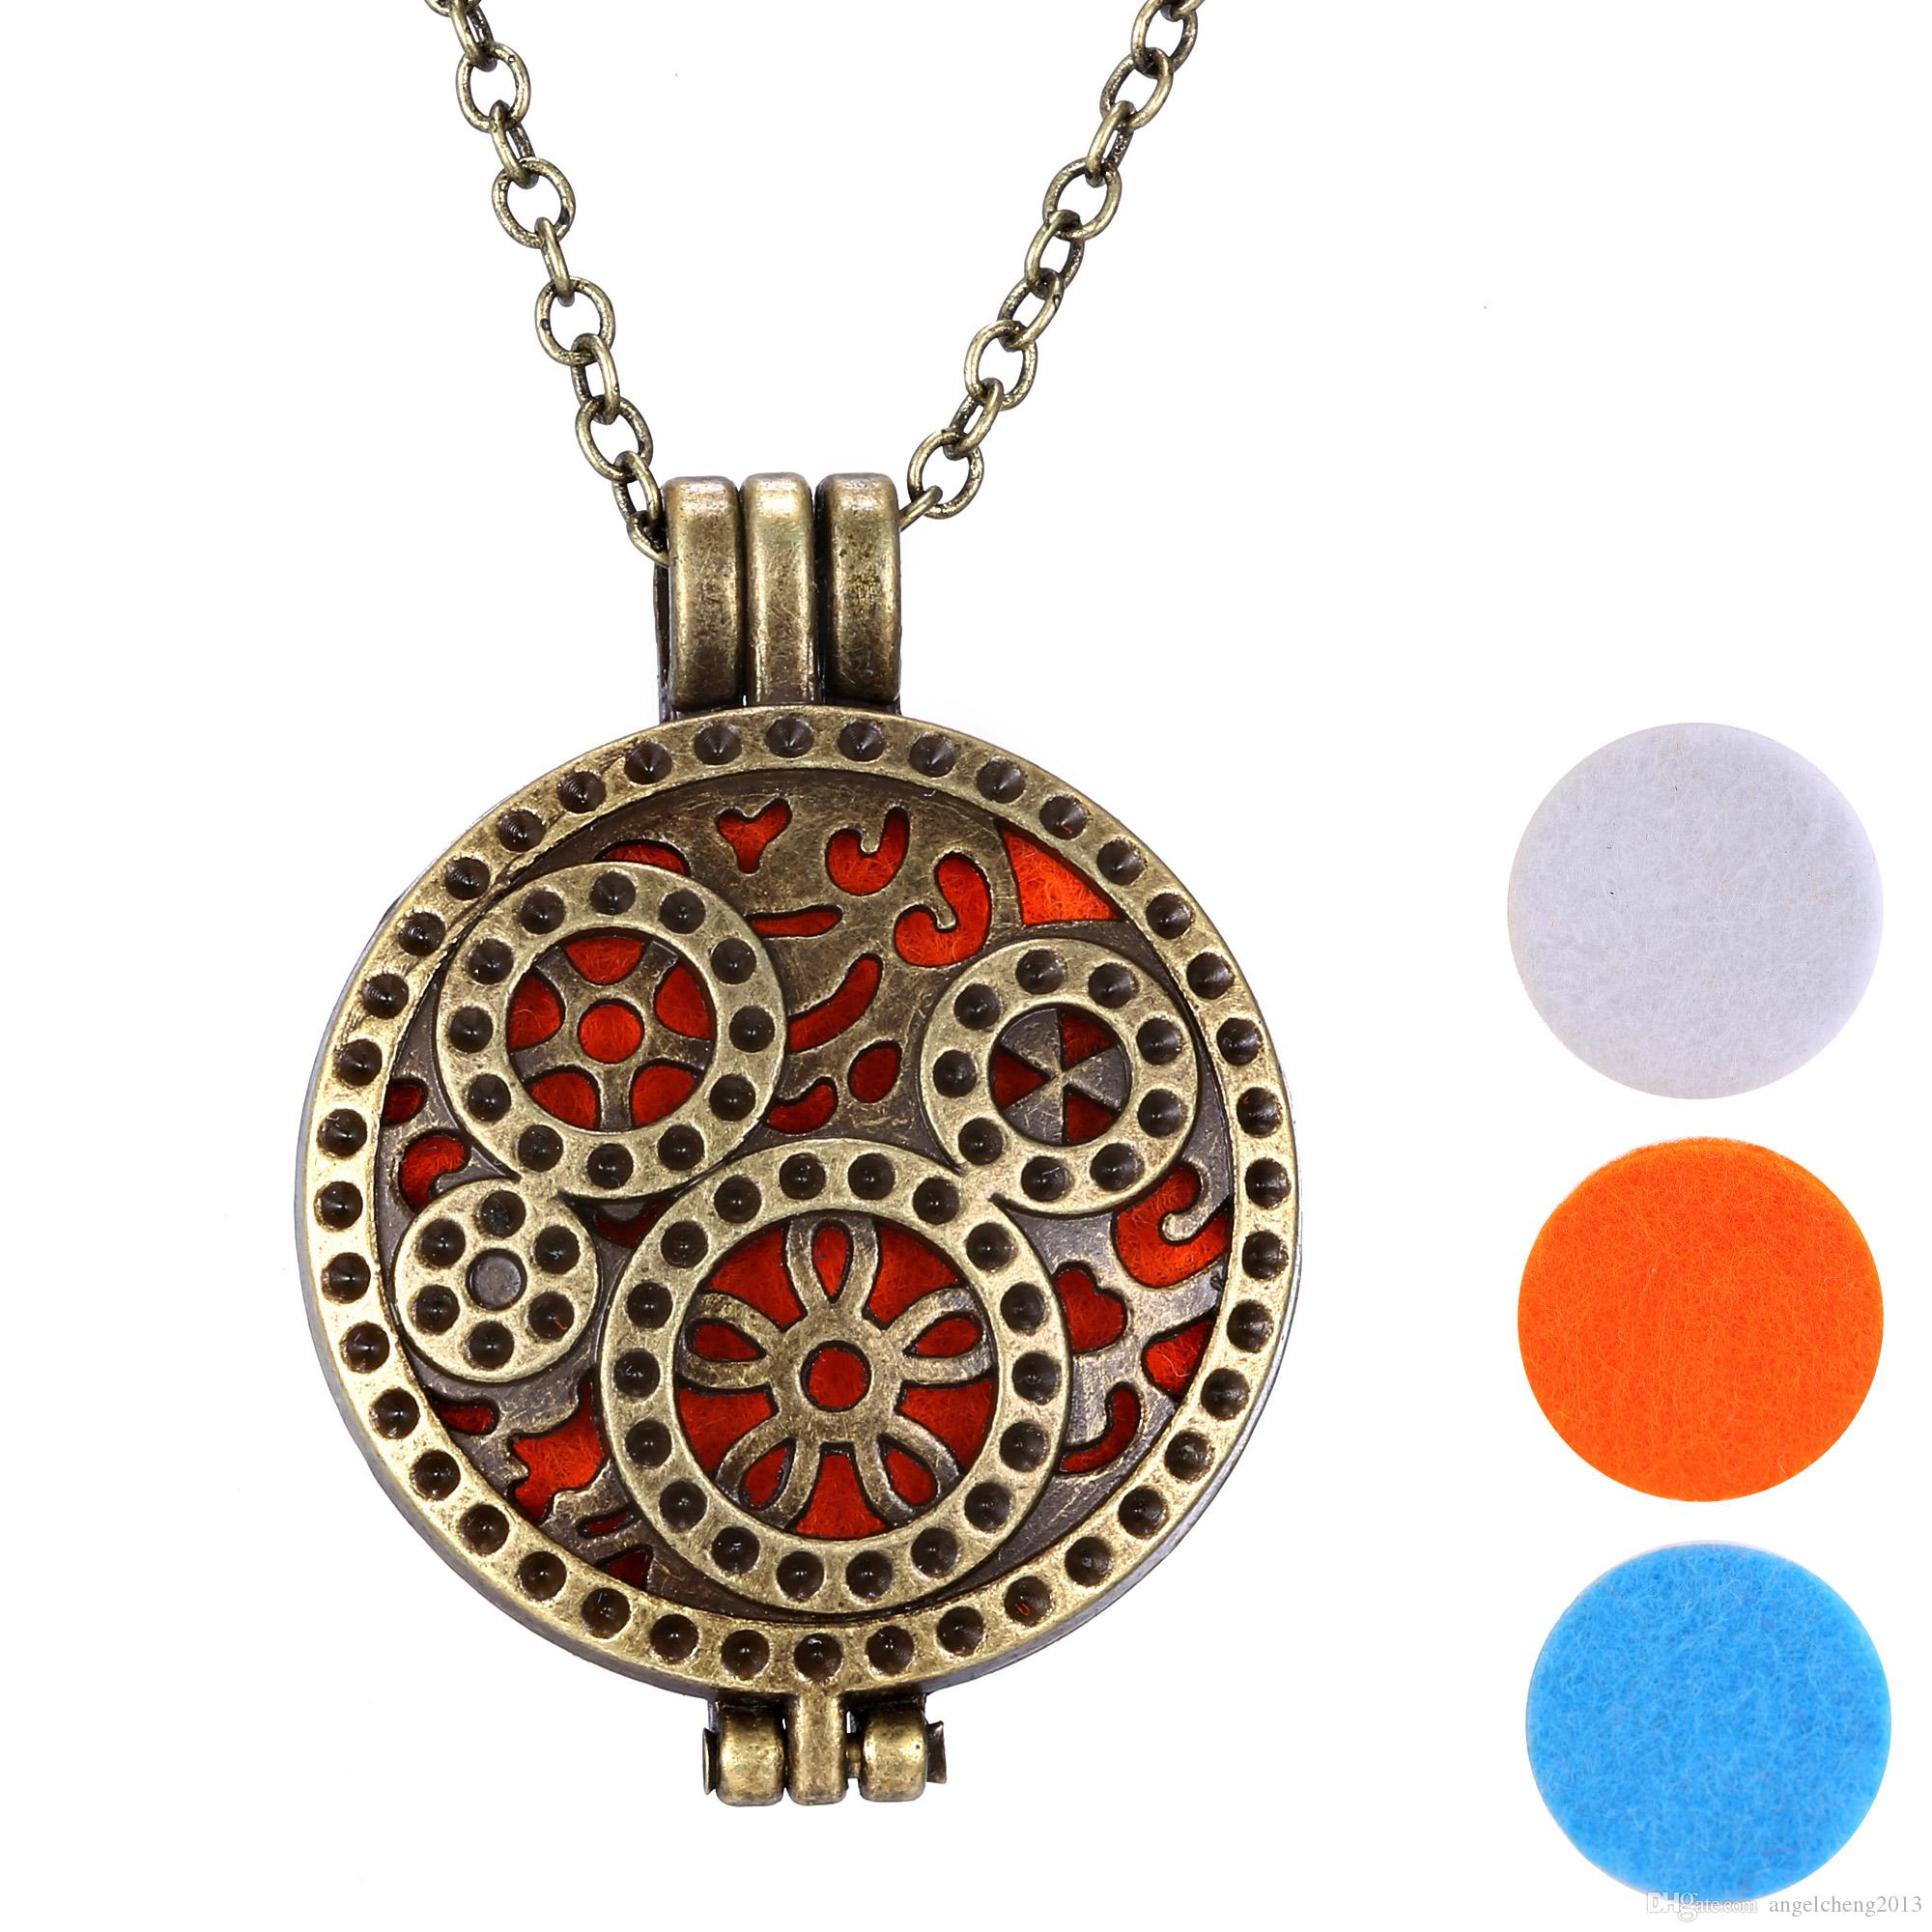 oil necklacchain pendant copper pad essential vintage product style jewelry store aromatherapy material diffuser locket necklace ful